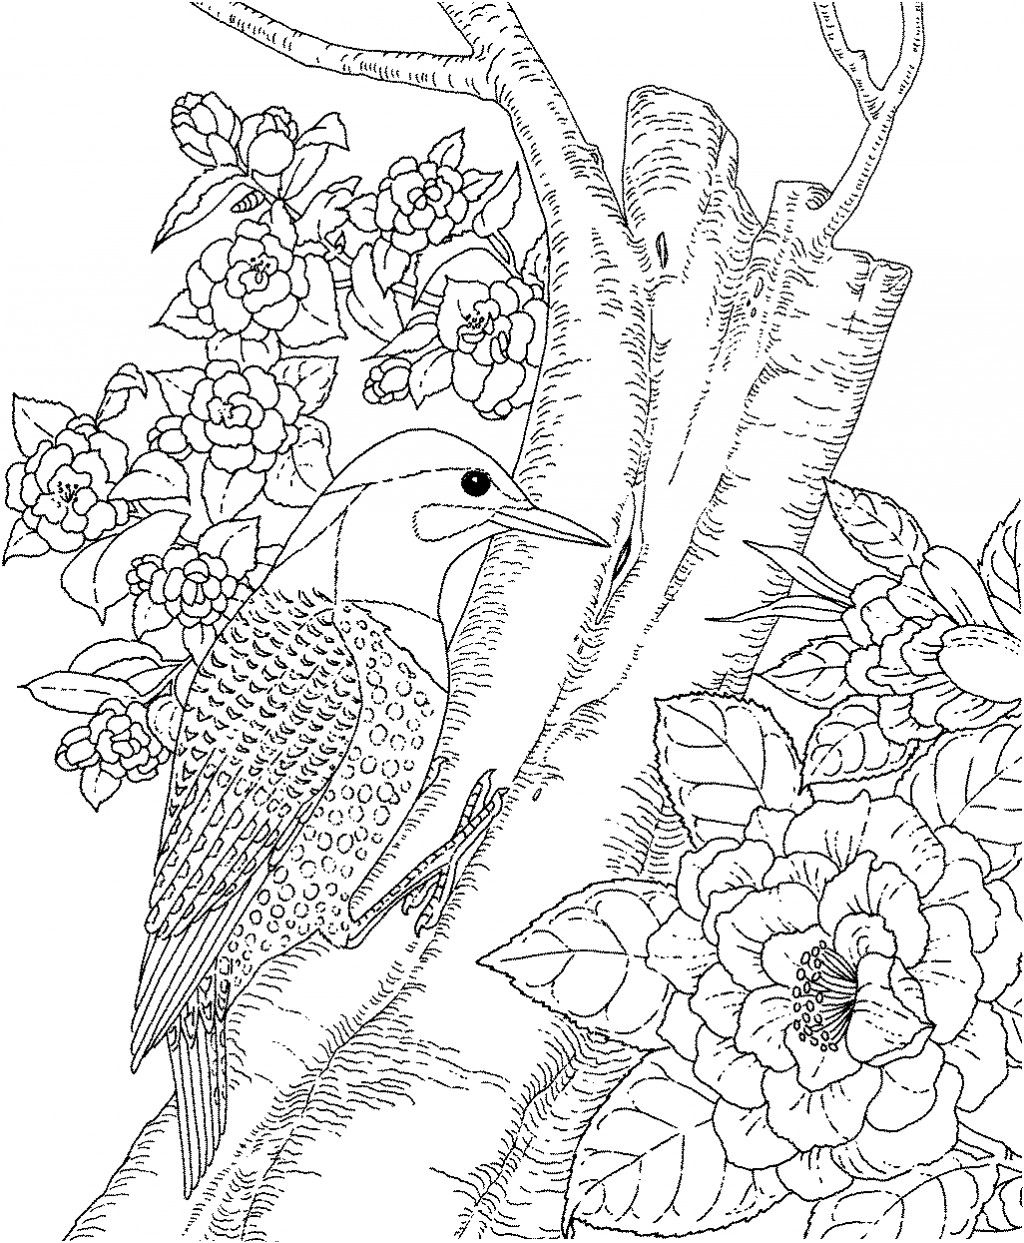 Backyard Animals And Nature Coloring Books Free Coloring Pages Animal Coloring Pages Coloring Pages Nature Bird Coloring Pages